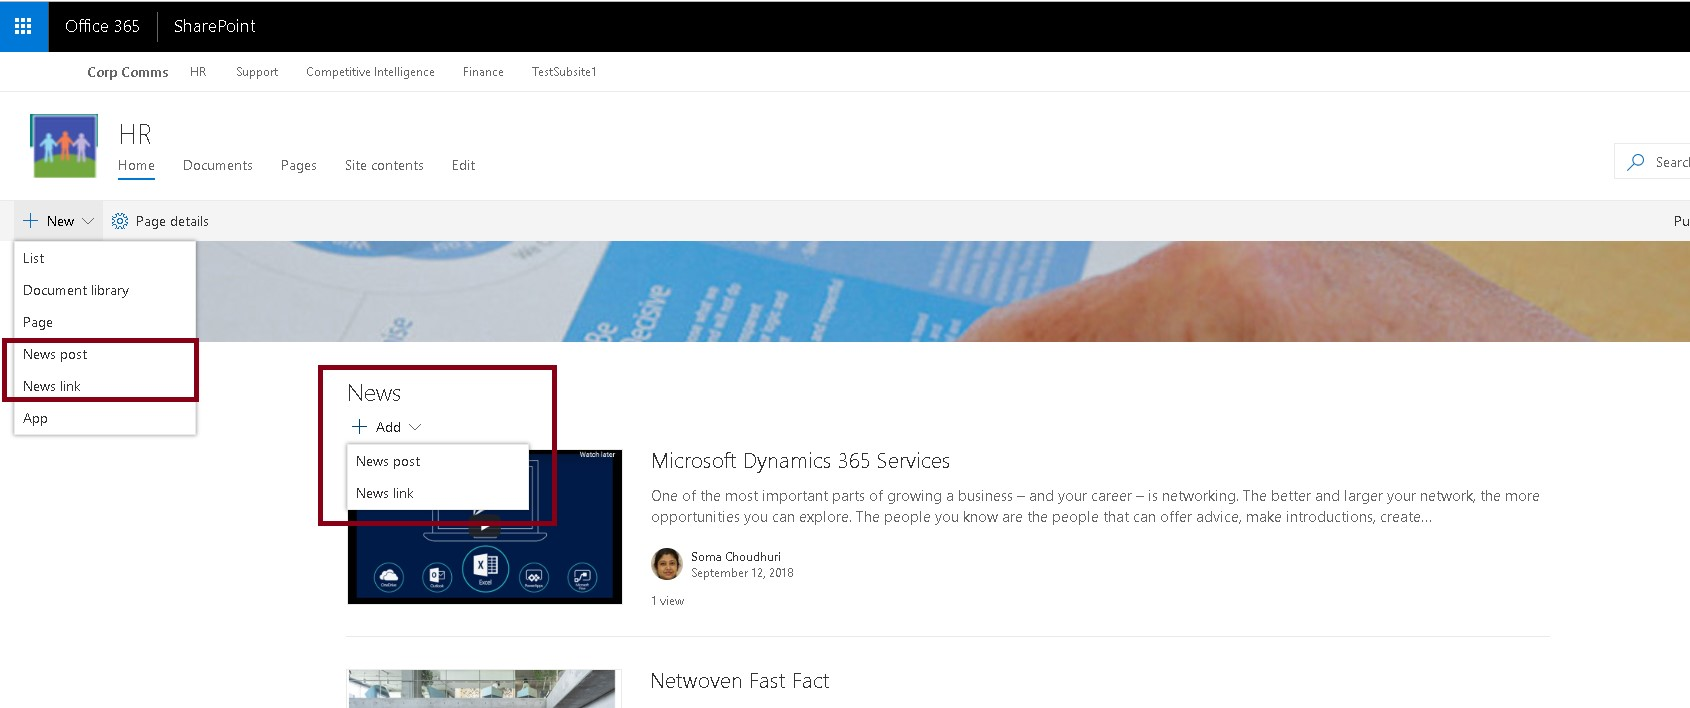 Jive Migration and Modern SharePoint Pages